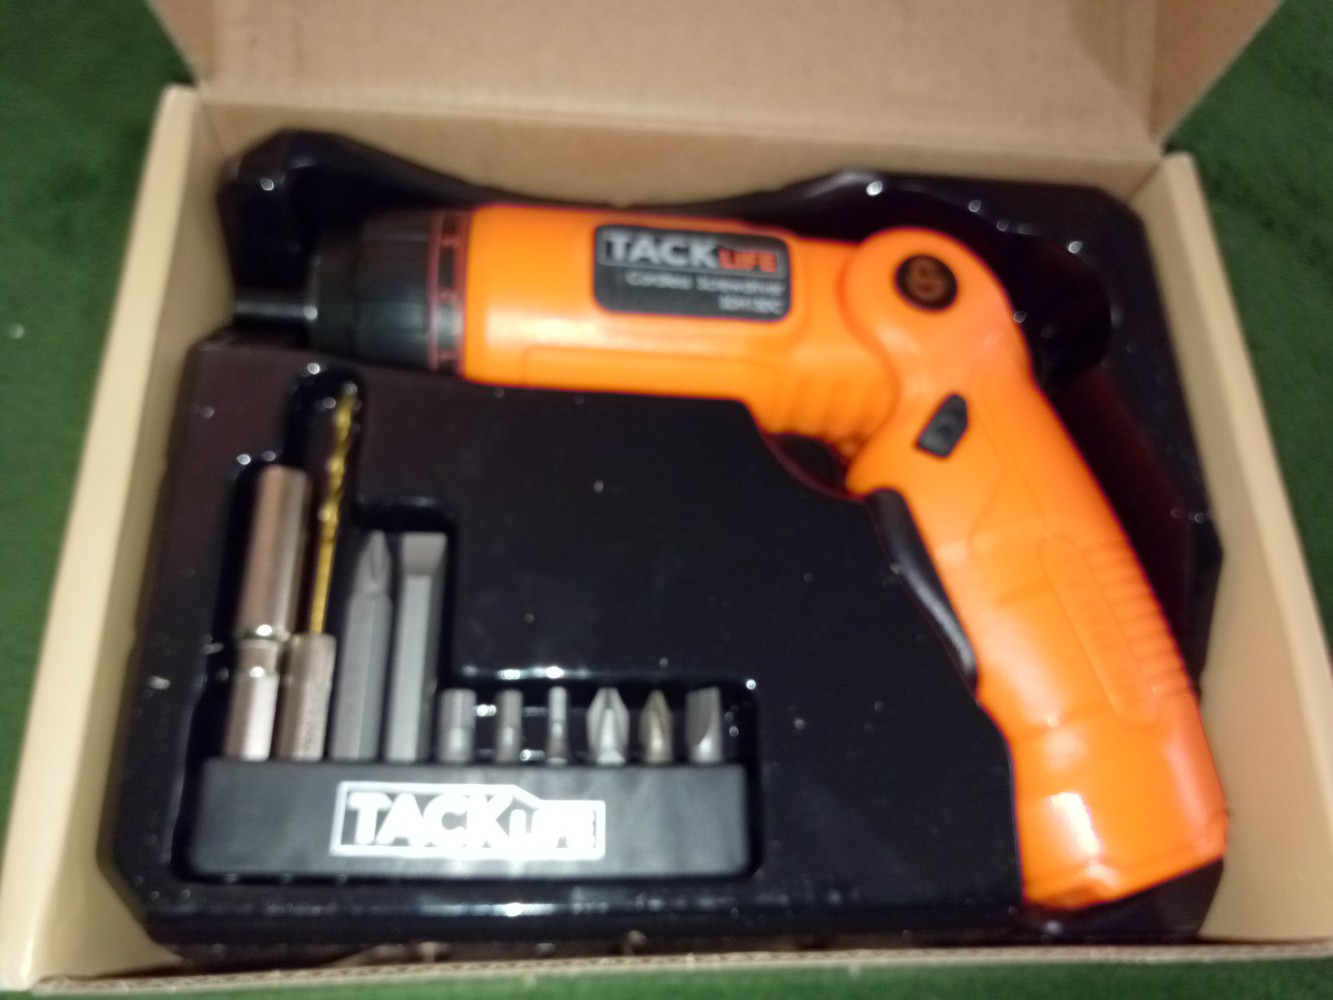 Tacklife Sdh13dc Advanced Cordless Screwdriver 36 Volt Max Torque Icing Kit Further Master Appliance Heat Gun On 120v Tape Wiring 4nm 3 Position Rechargeable With 10 Bits Usb Charger And 4 Led Light Ideal